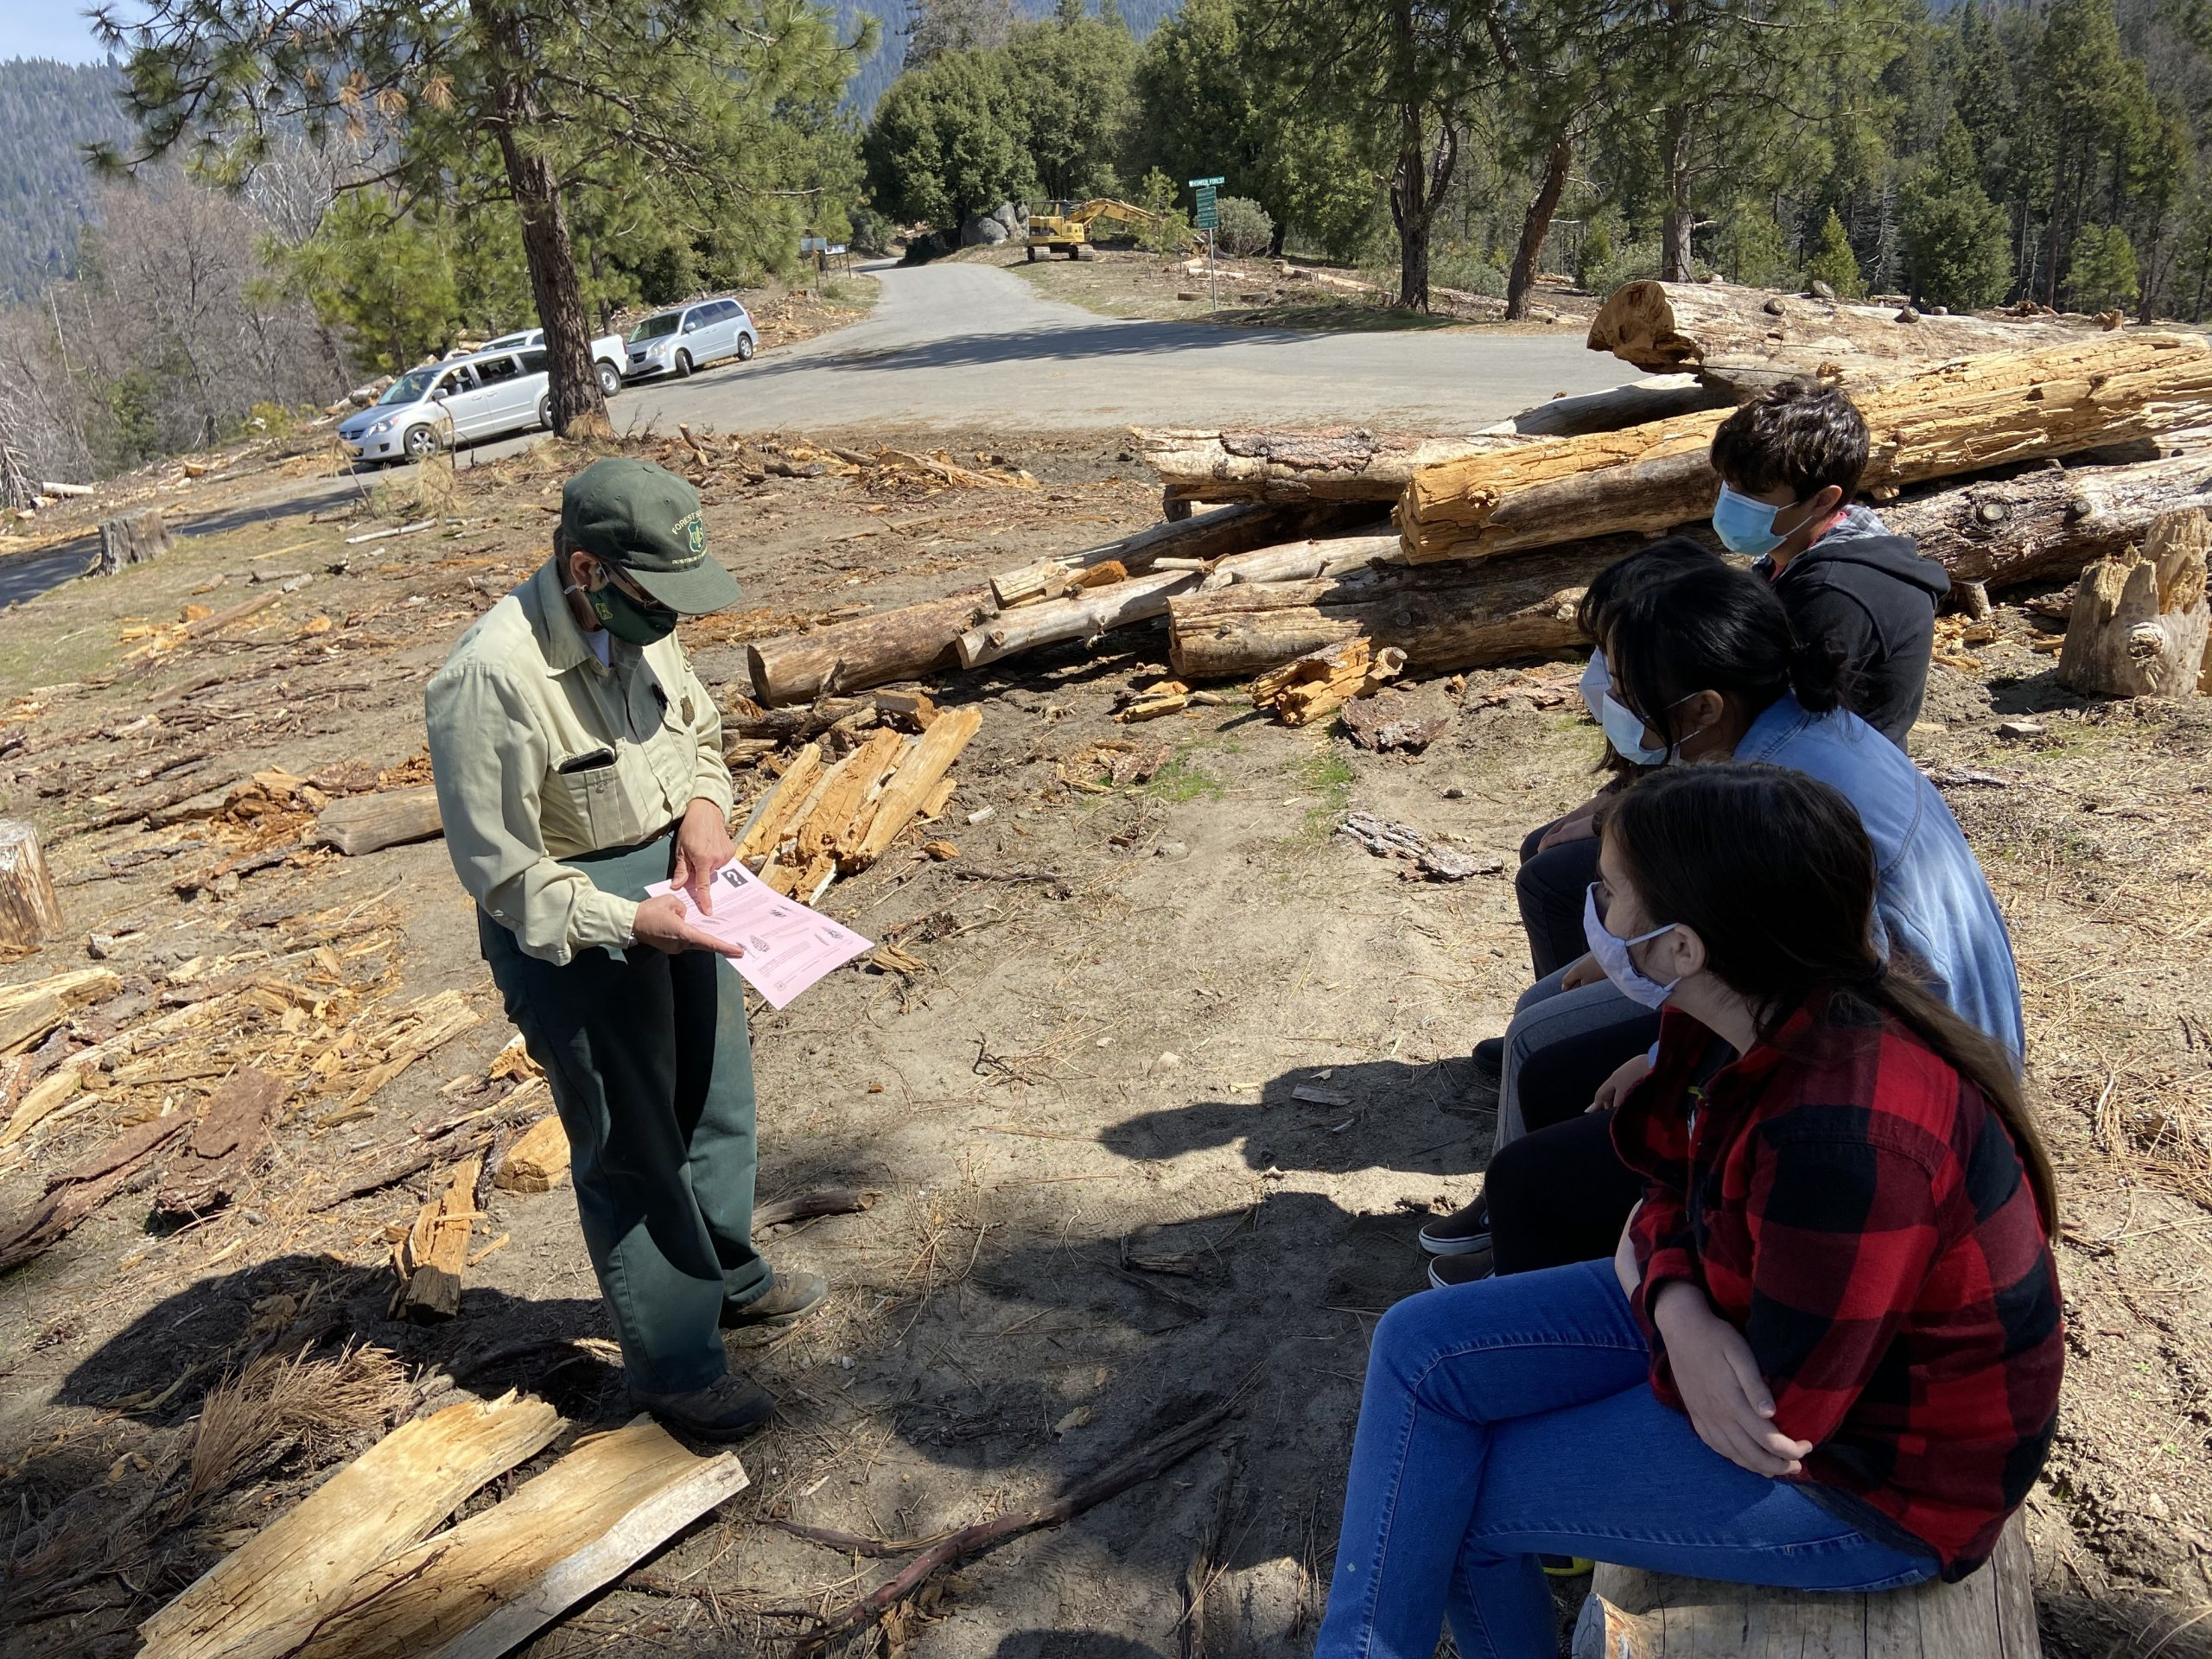 Marianne Emmendorfer, a Silviculturist with the Sequoia National Forest's Hume Lake Ranger District, describes the Eshom Ecological Restoration project to the team of four eighth-grade students before planting seedlings.